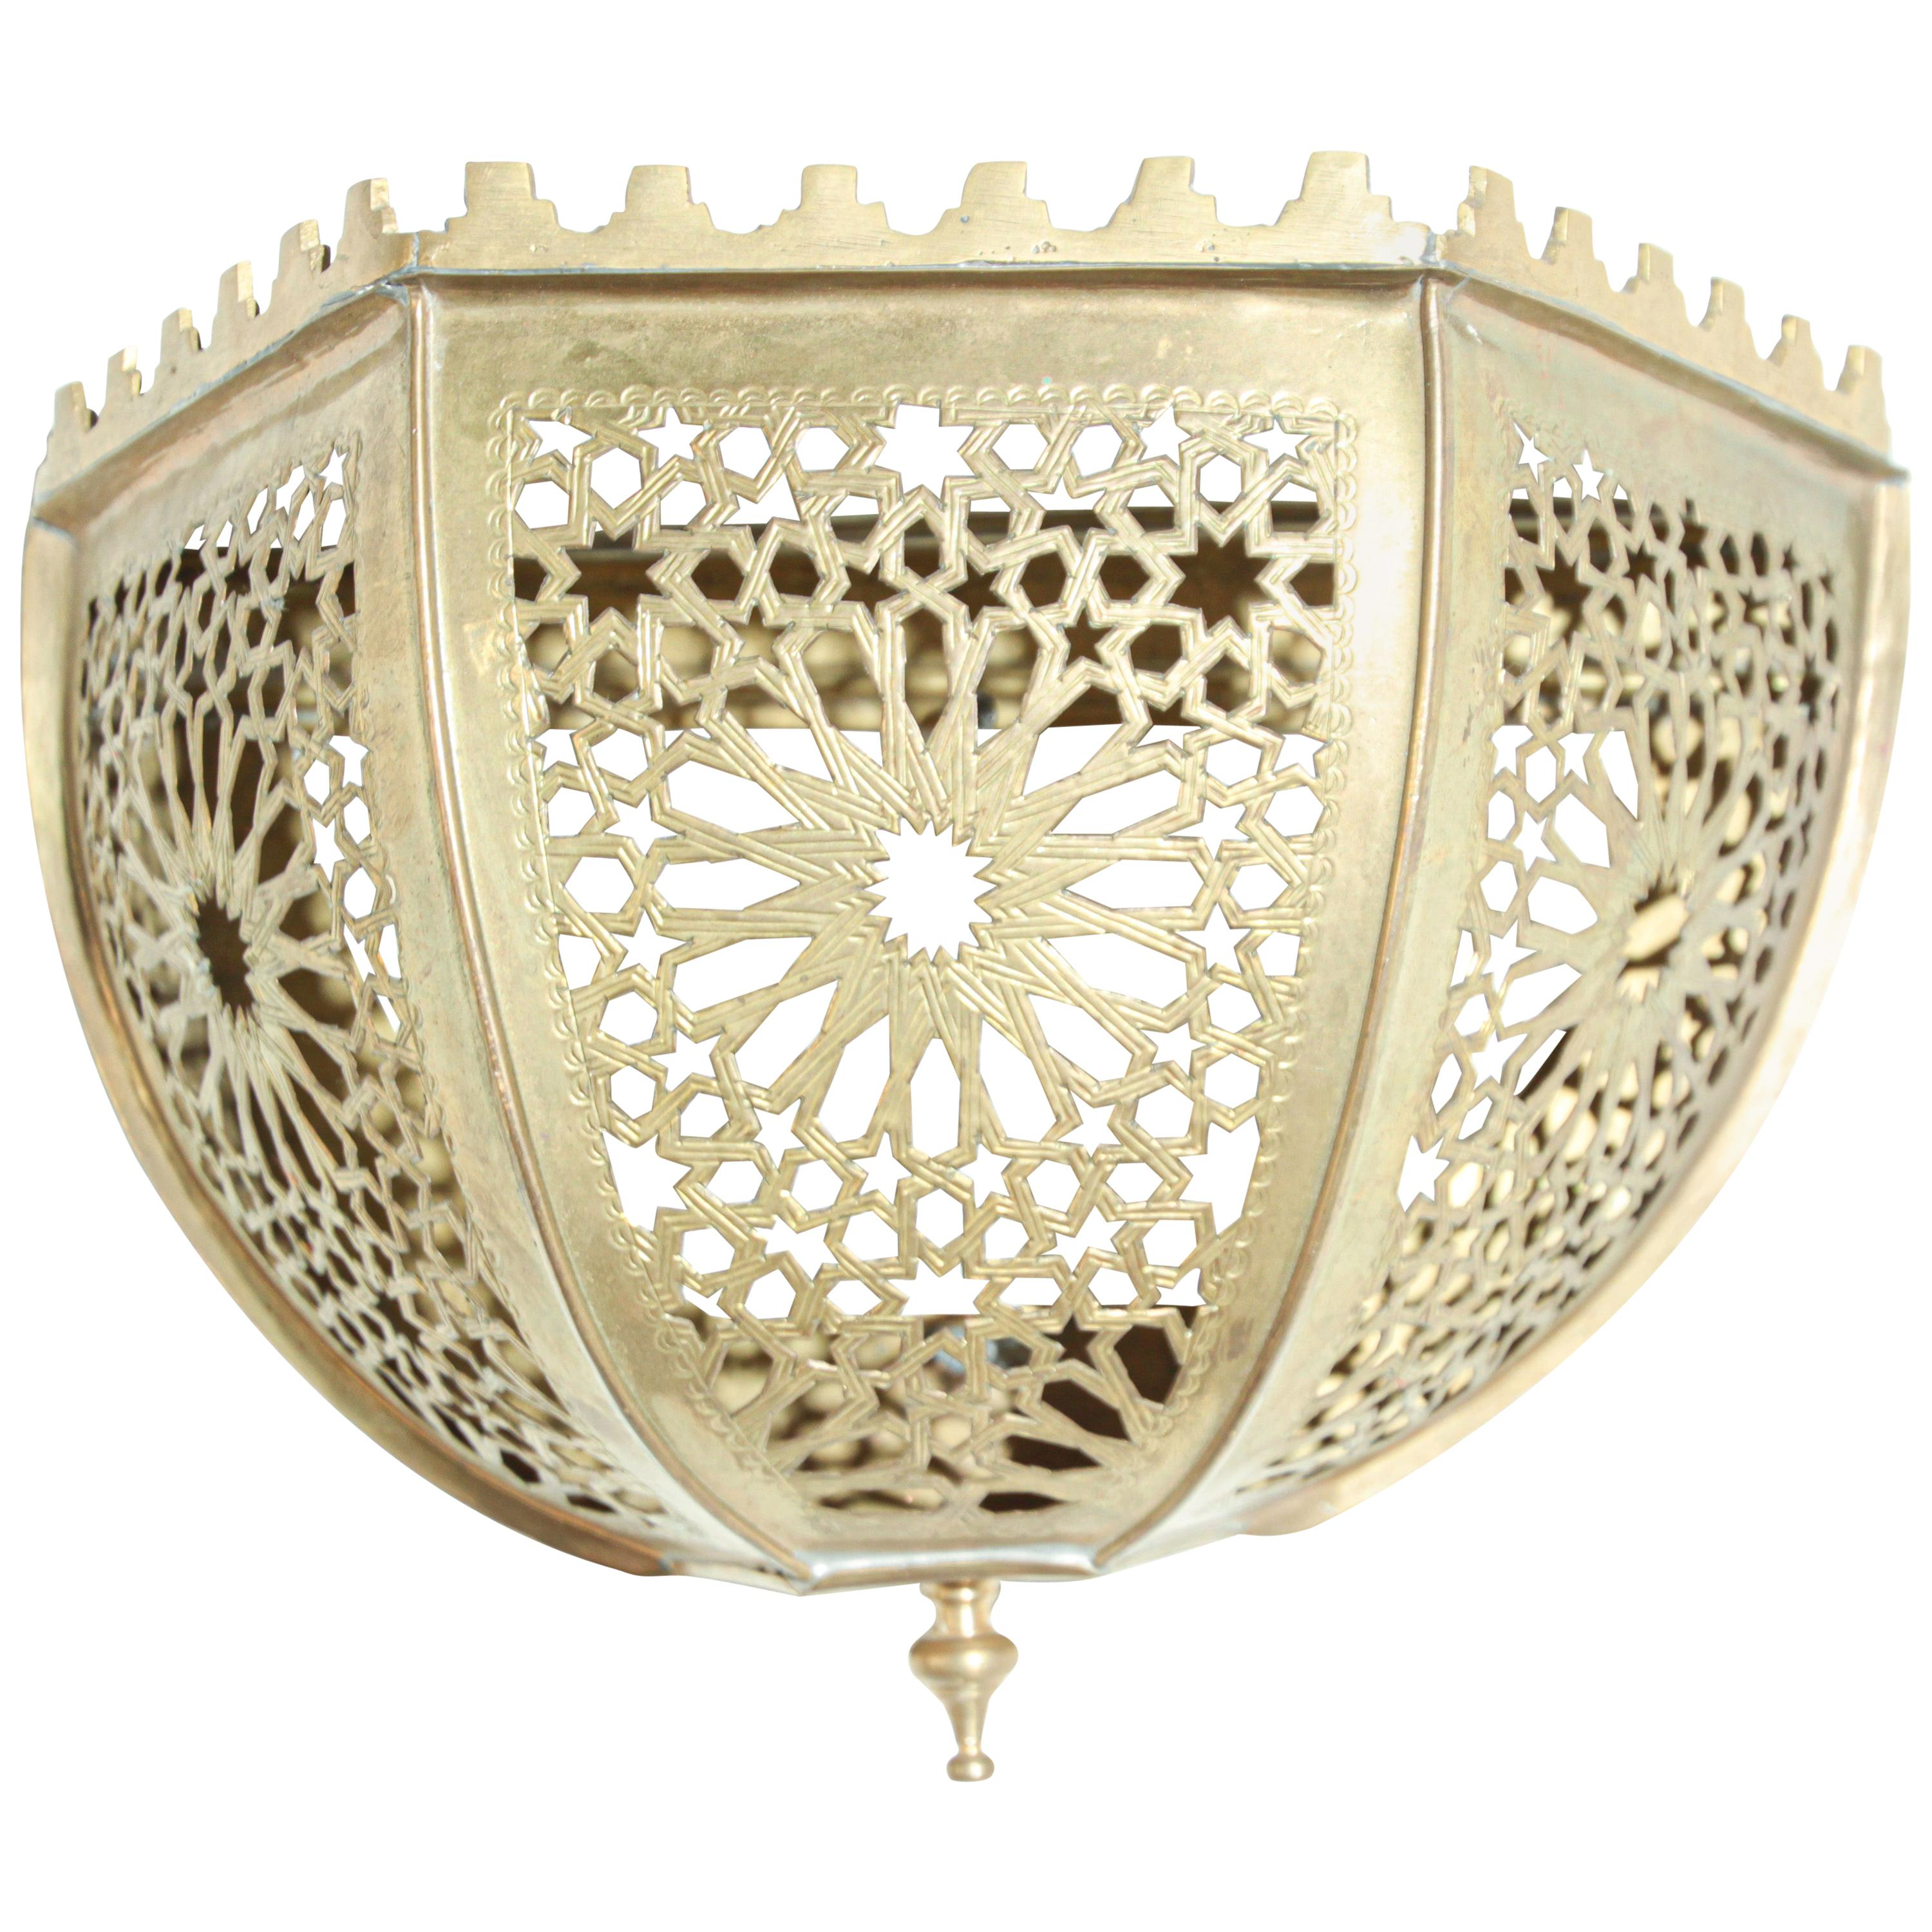 Brass Moroccan Art Wall Sconce Shade